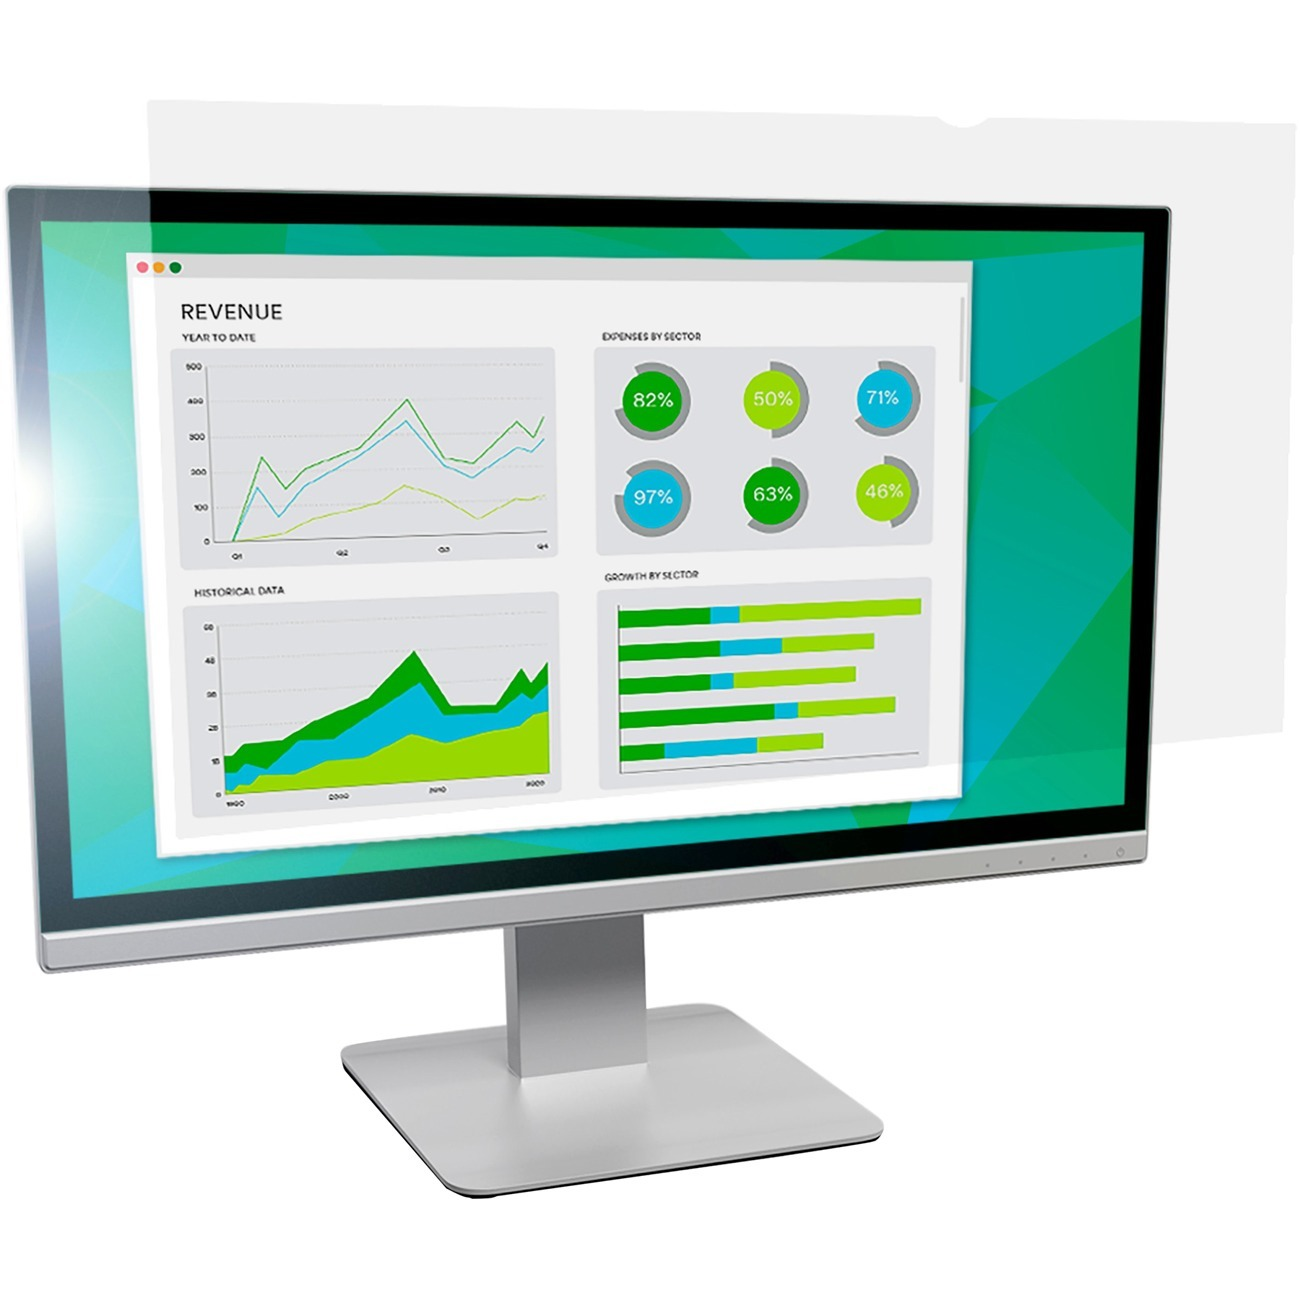 """3M, MMMAG195W9B, Anti-Glare Filter for 19.5"""" Widescreen Monitor (AG195W9B), Clear,Matte"""